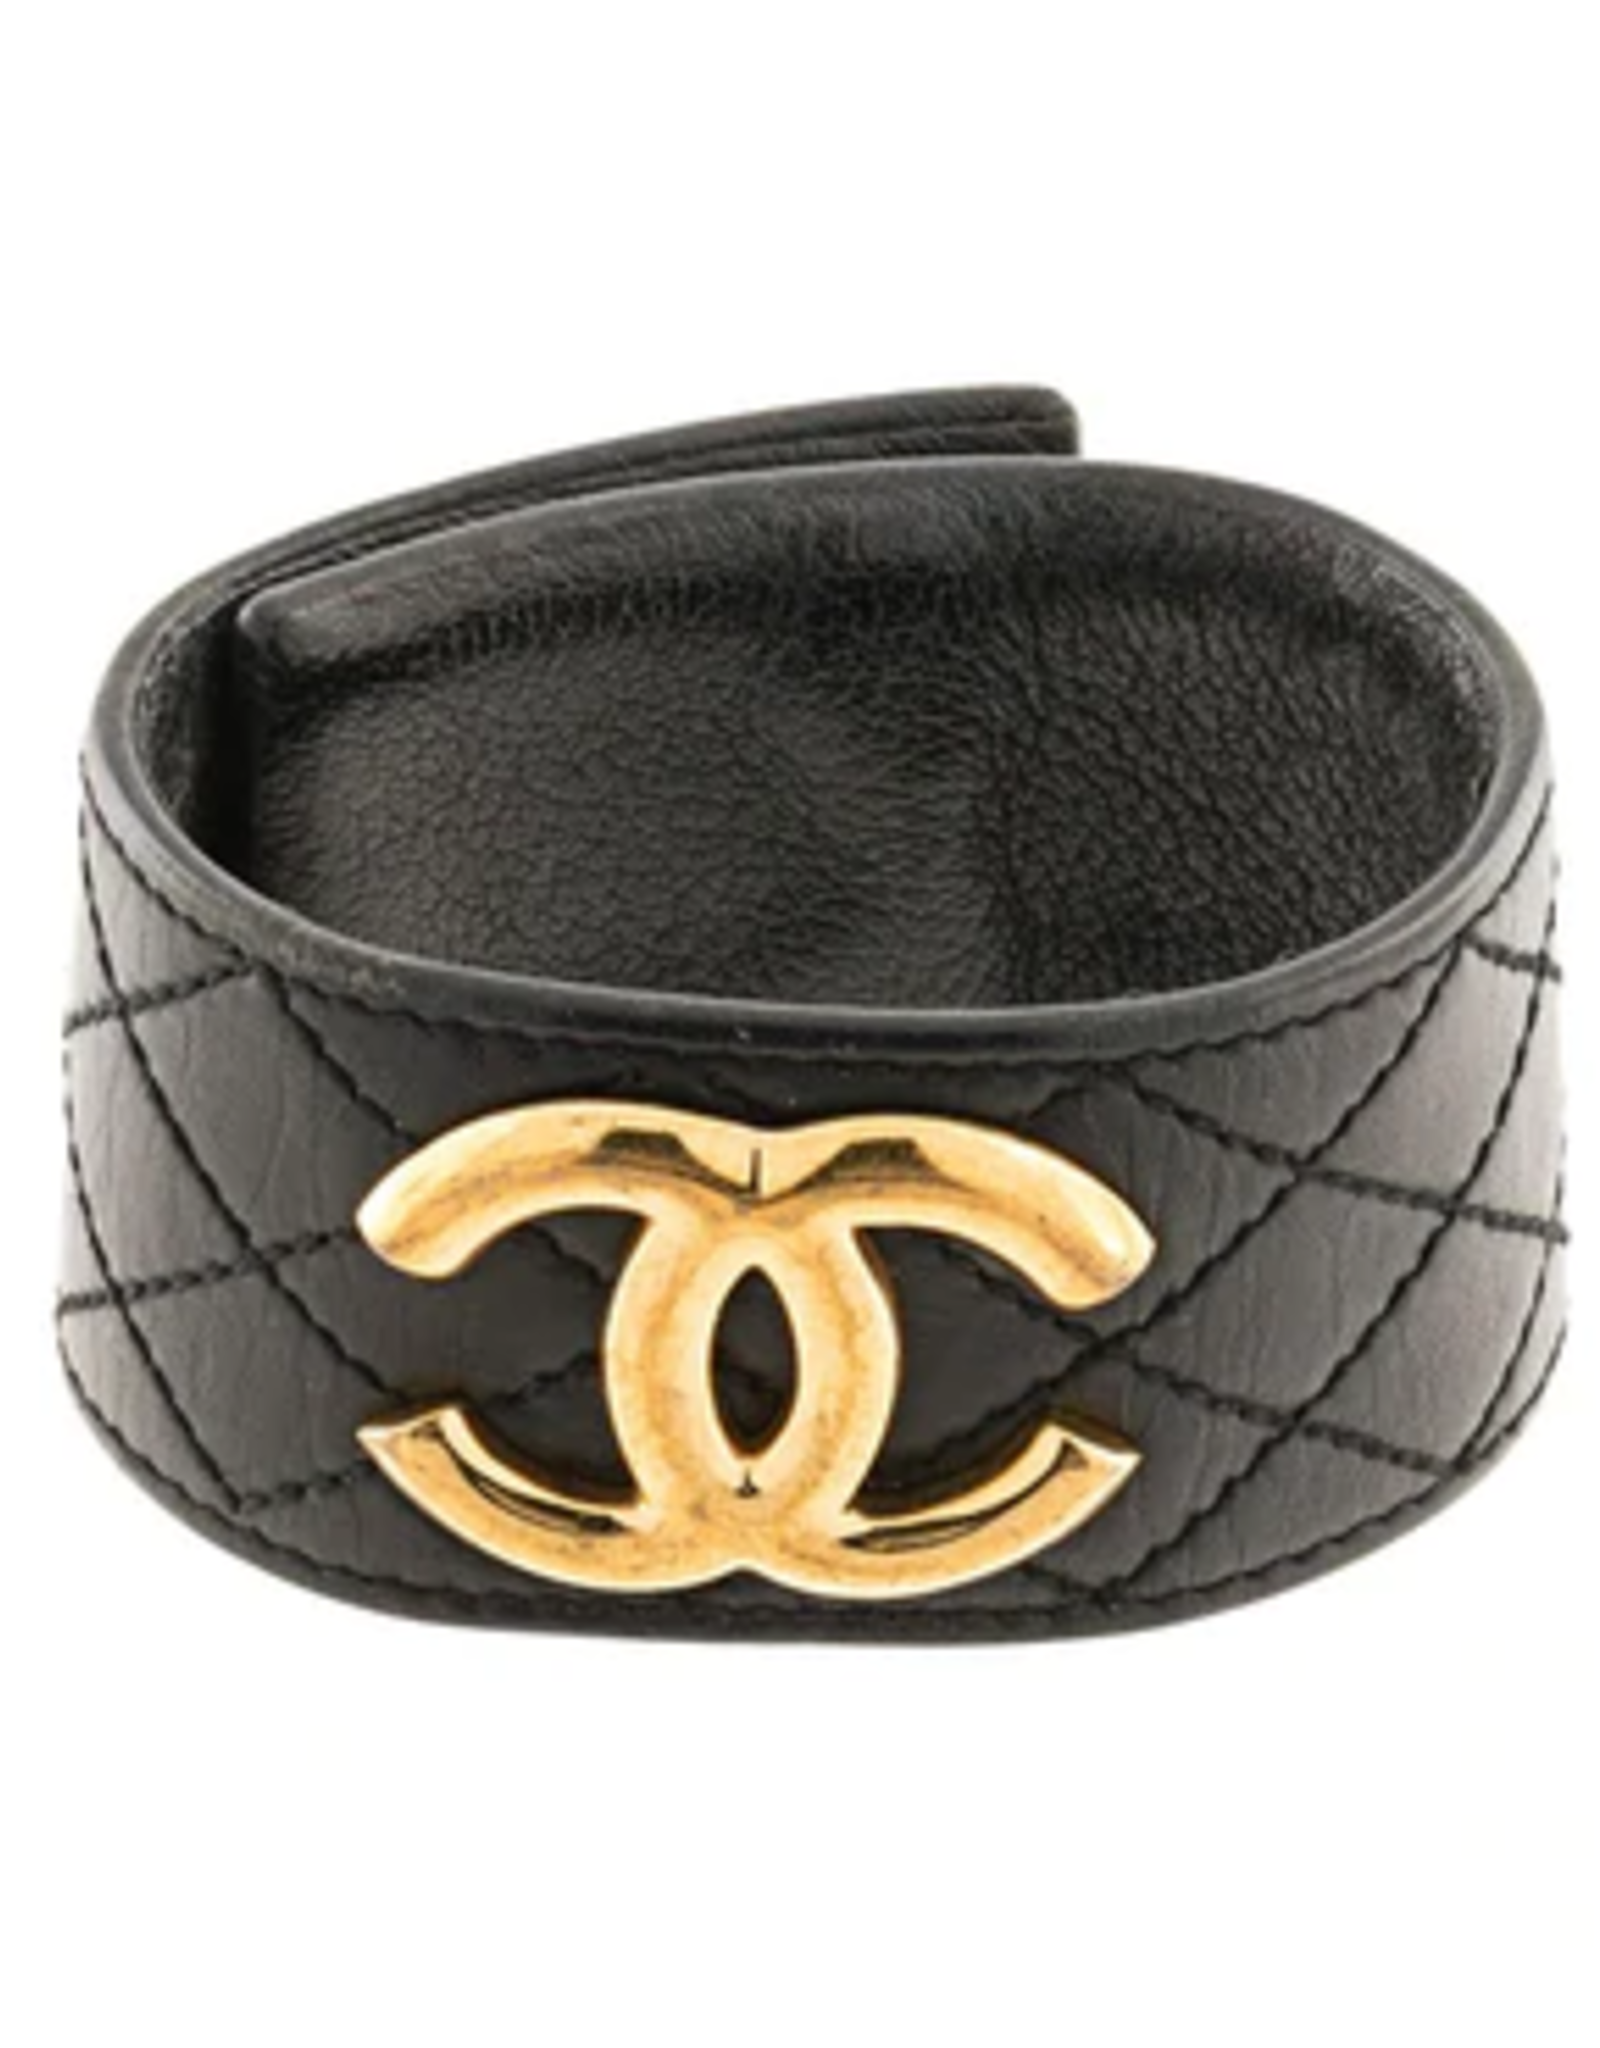 Chanel Chanel Quilted Leather Cuff (1997 Vintage)